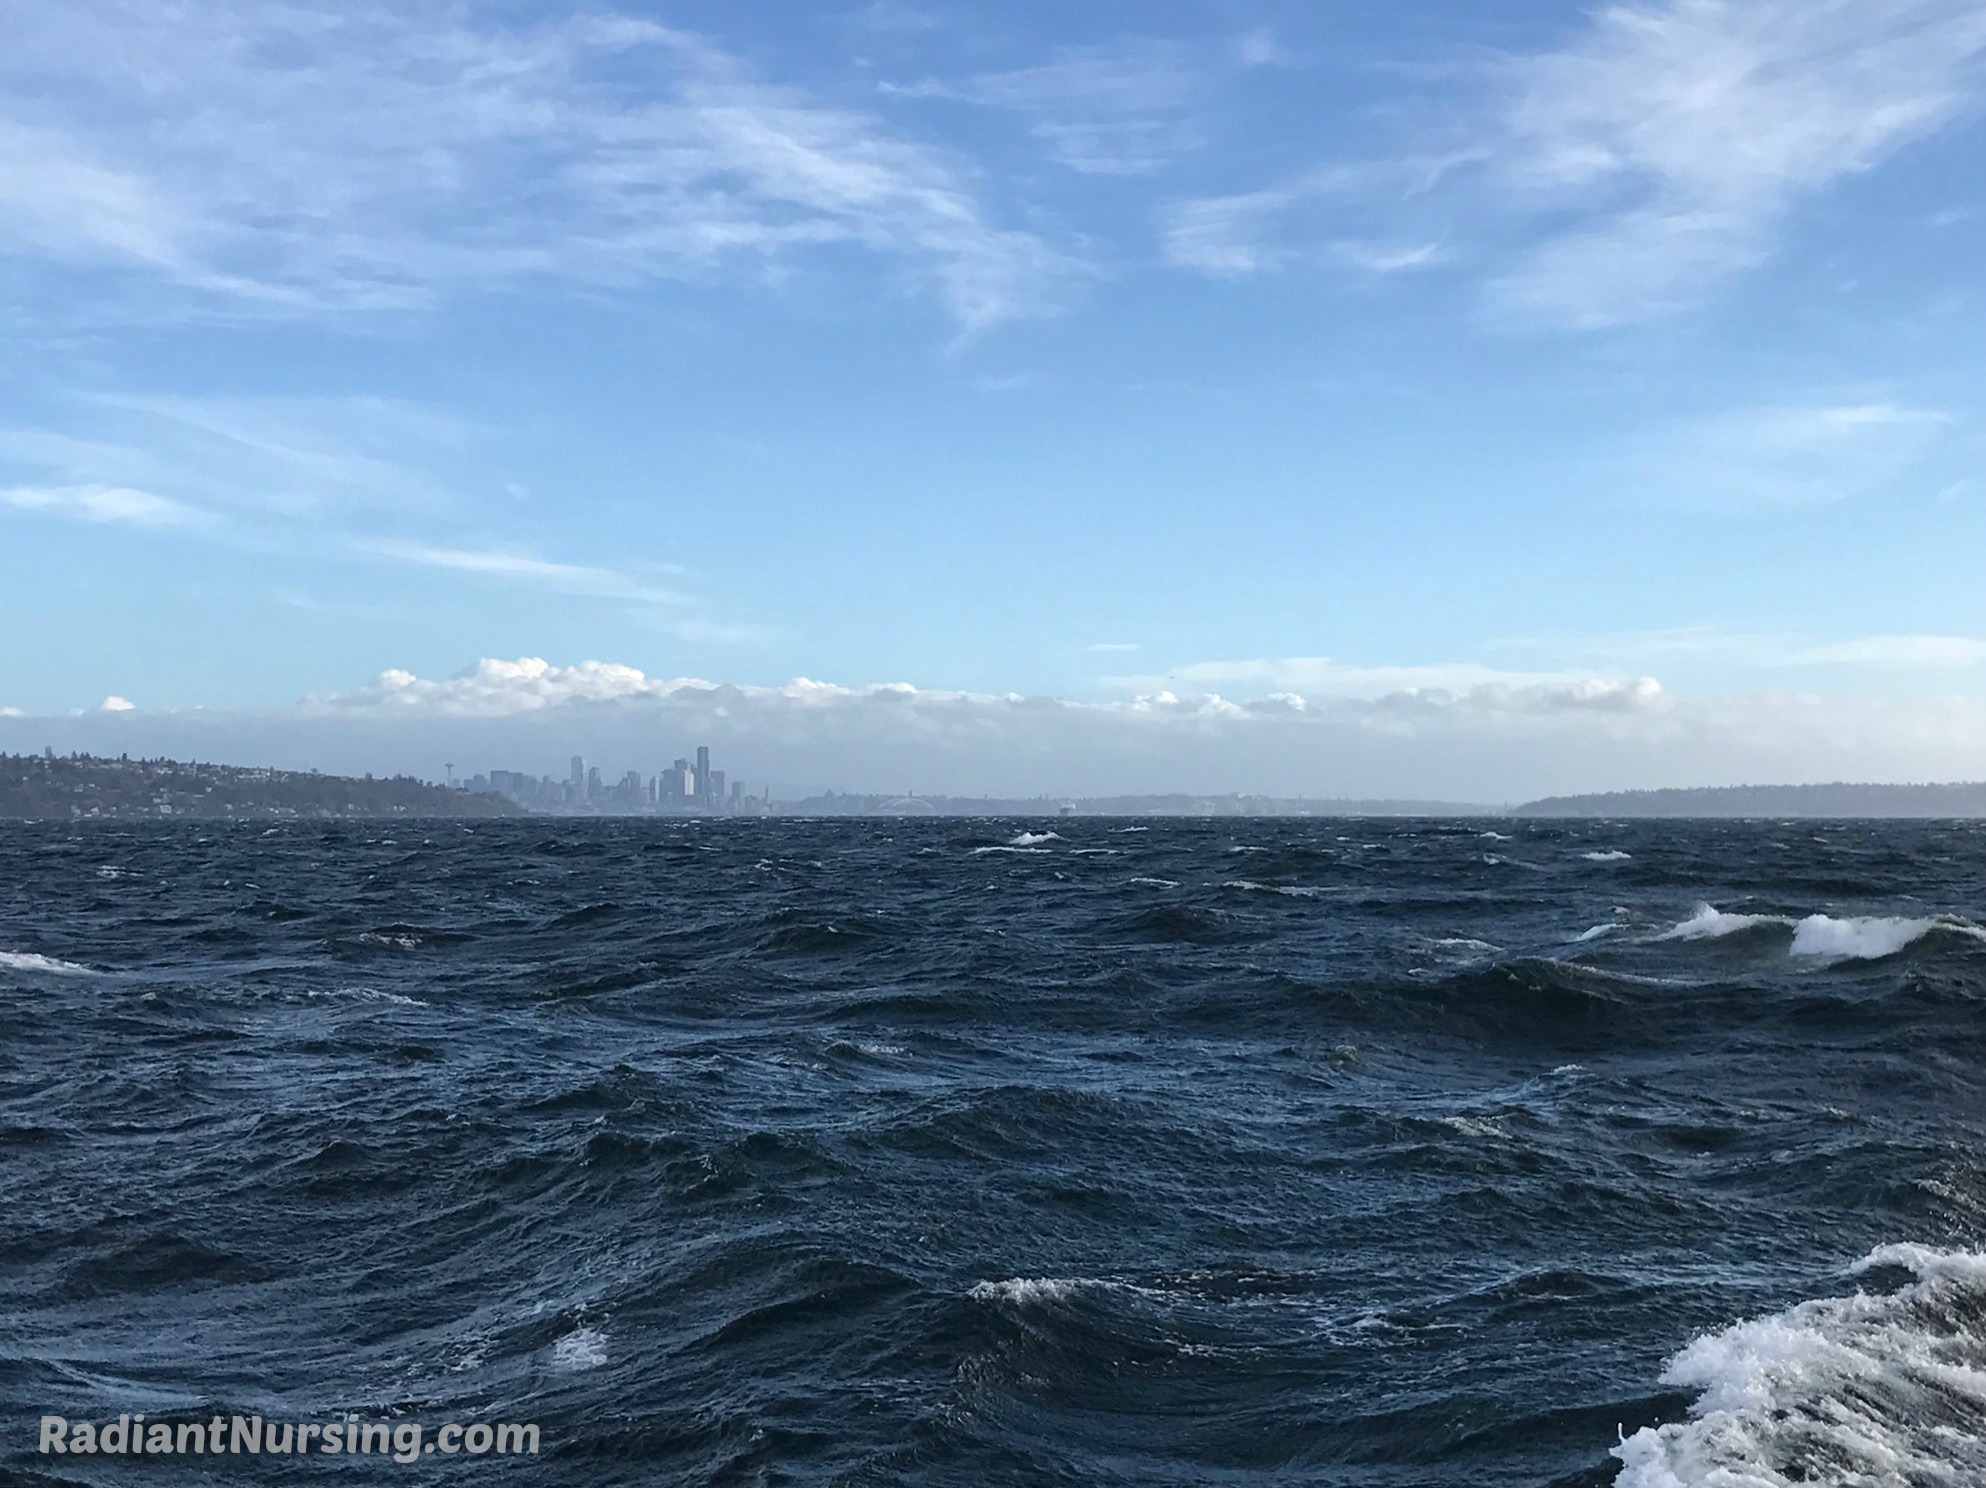 Powerful waves due to a strong wind on Puget Sound.